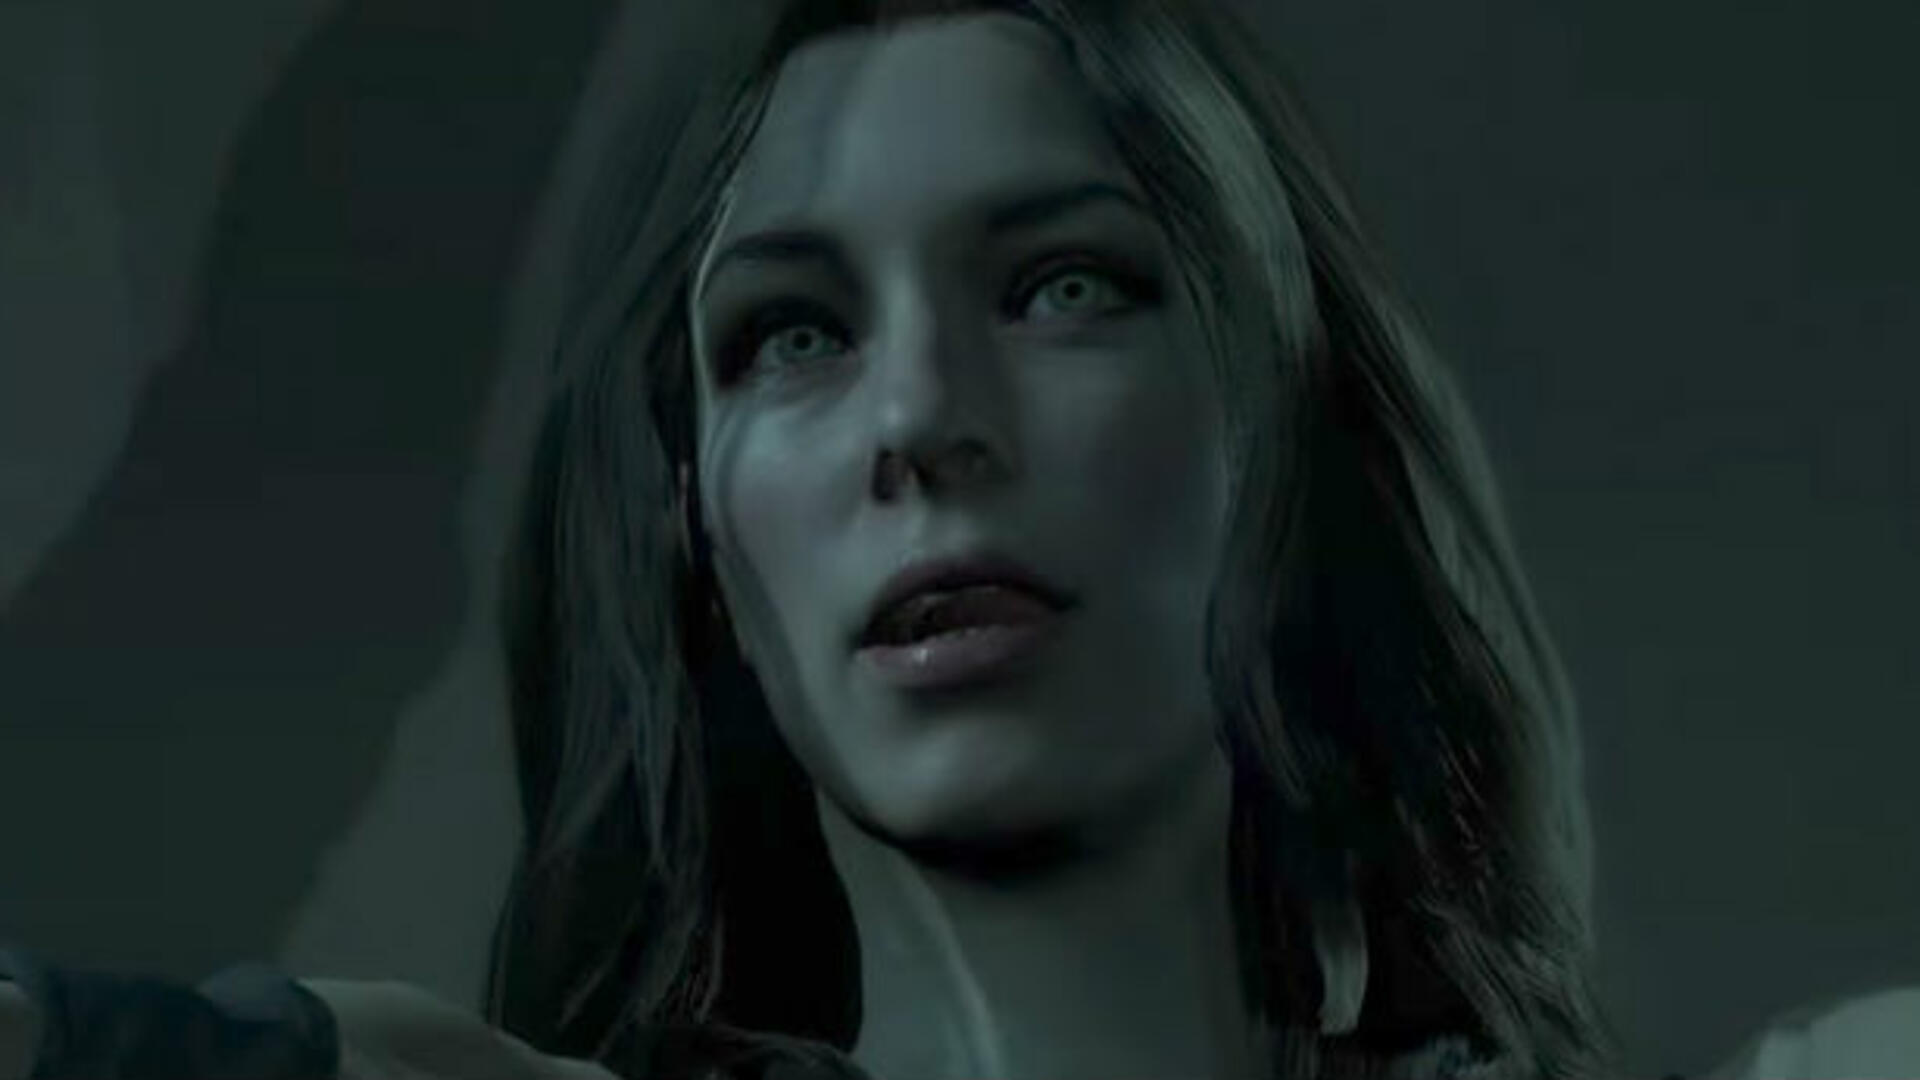 Monolith Explains Why Shelob Is a Woman, but That Doesn't Change the Fact Her Human Form Is Boring